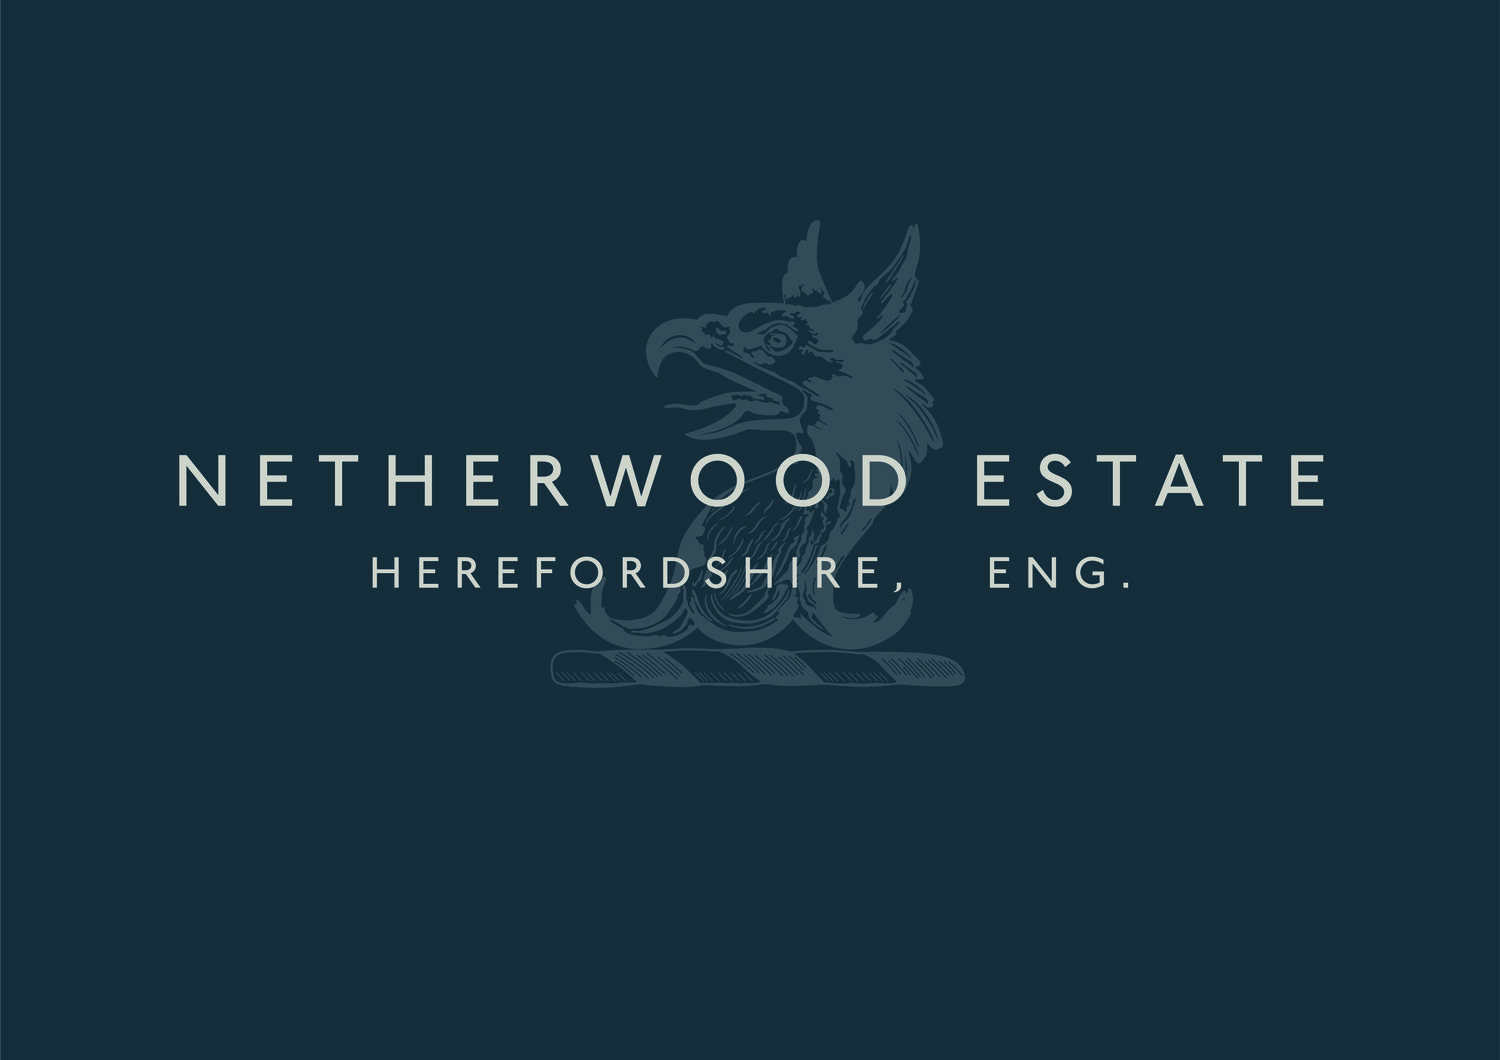 Netherwood Estate